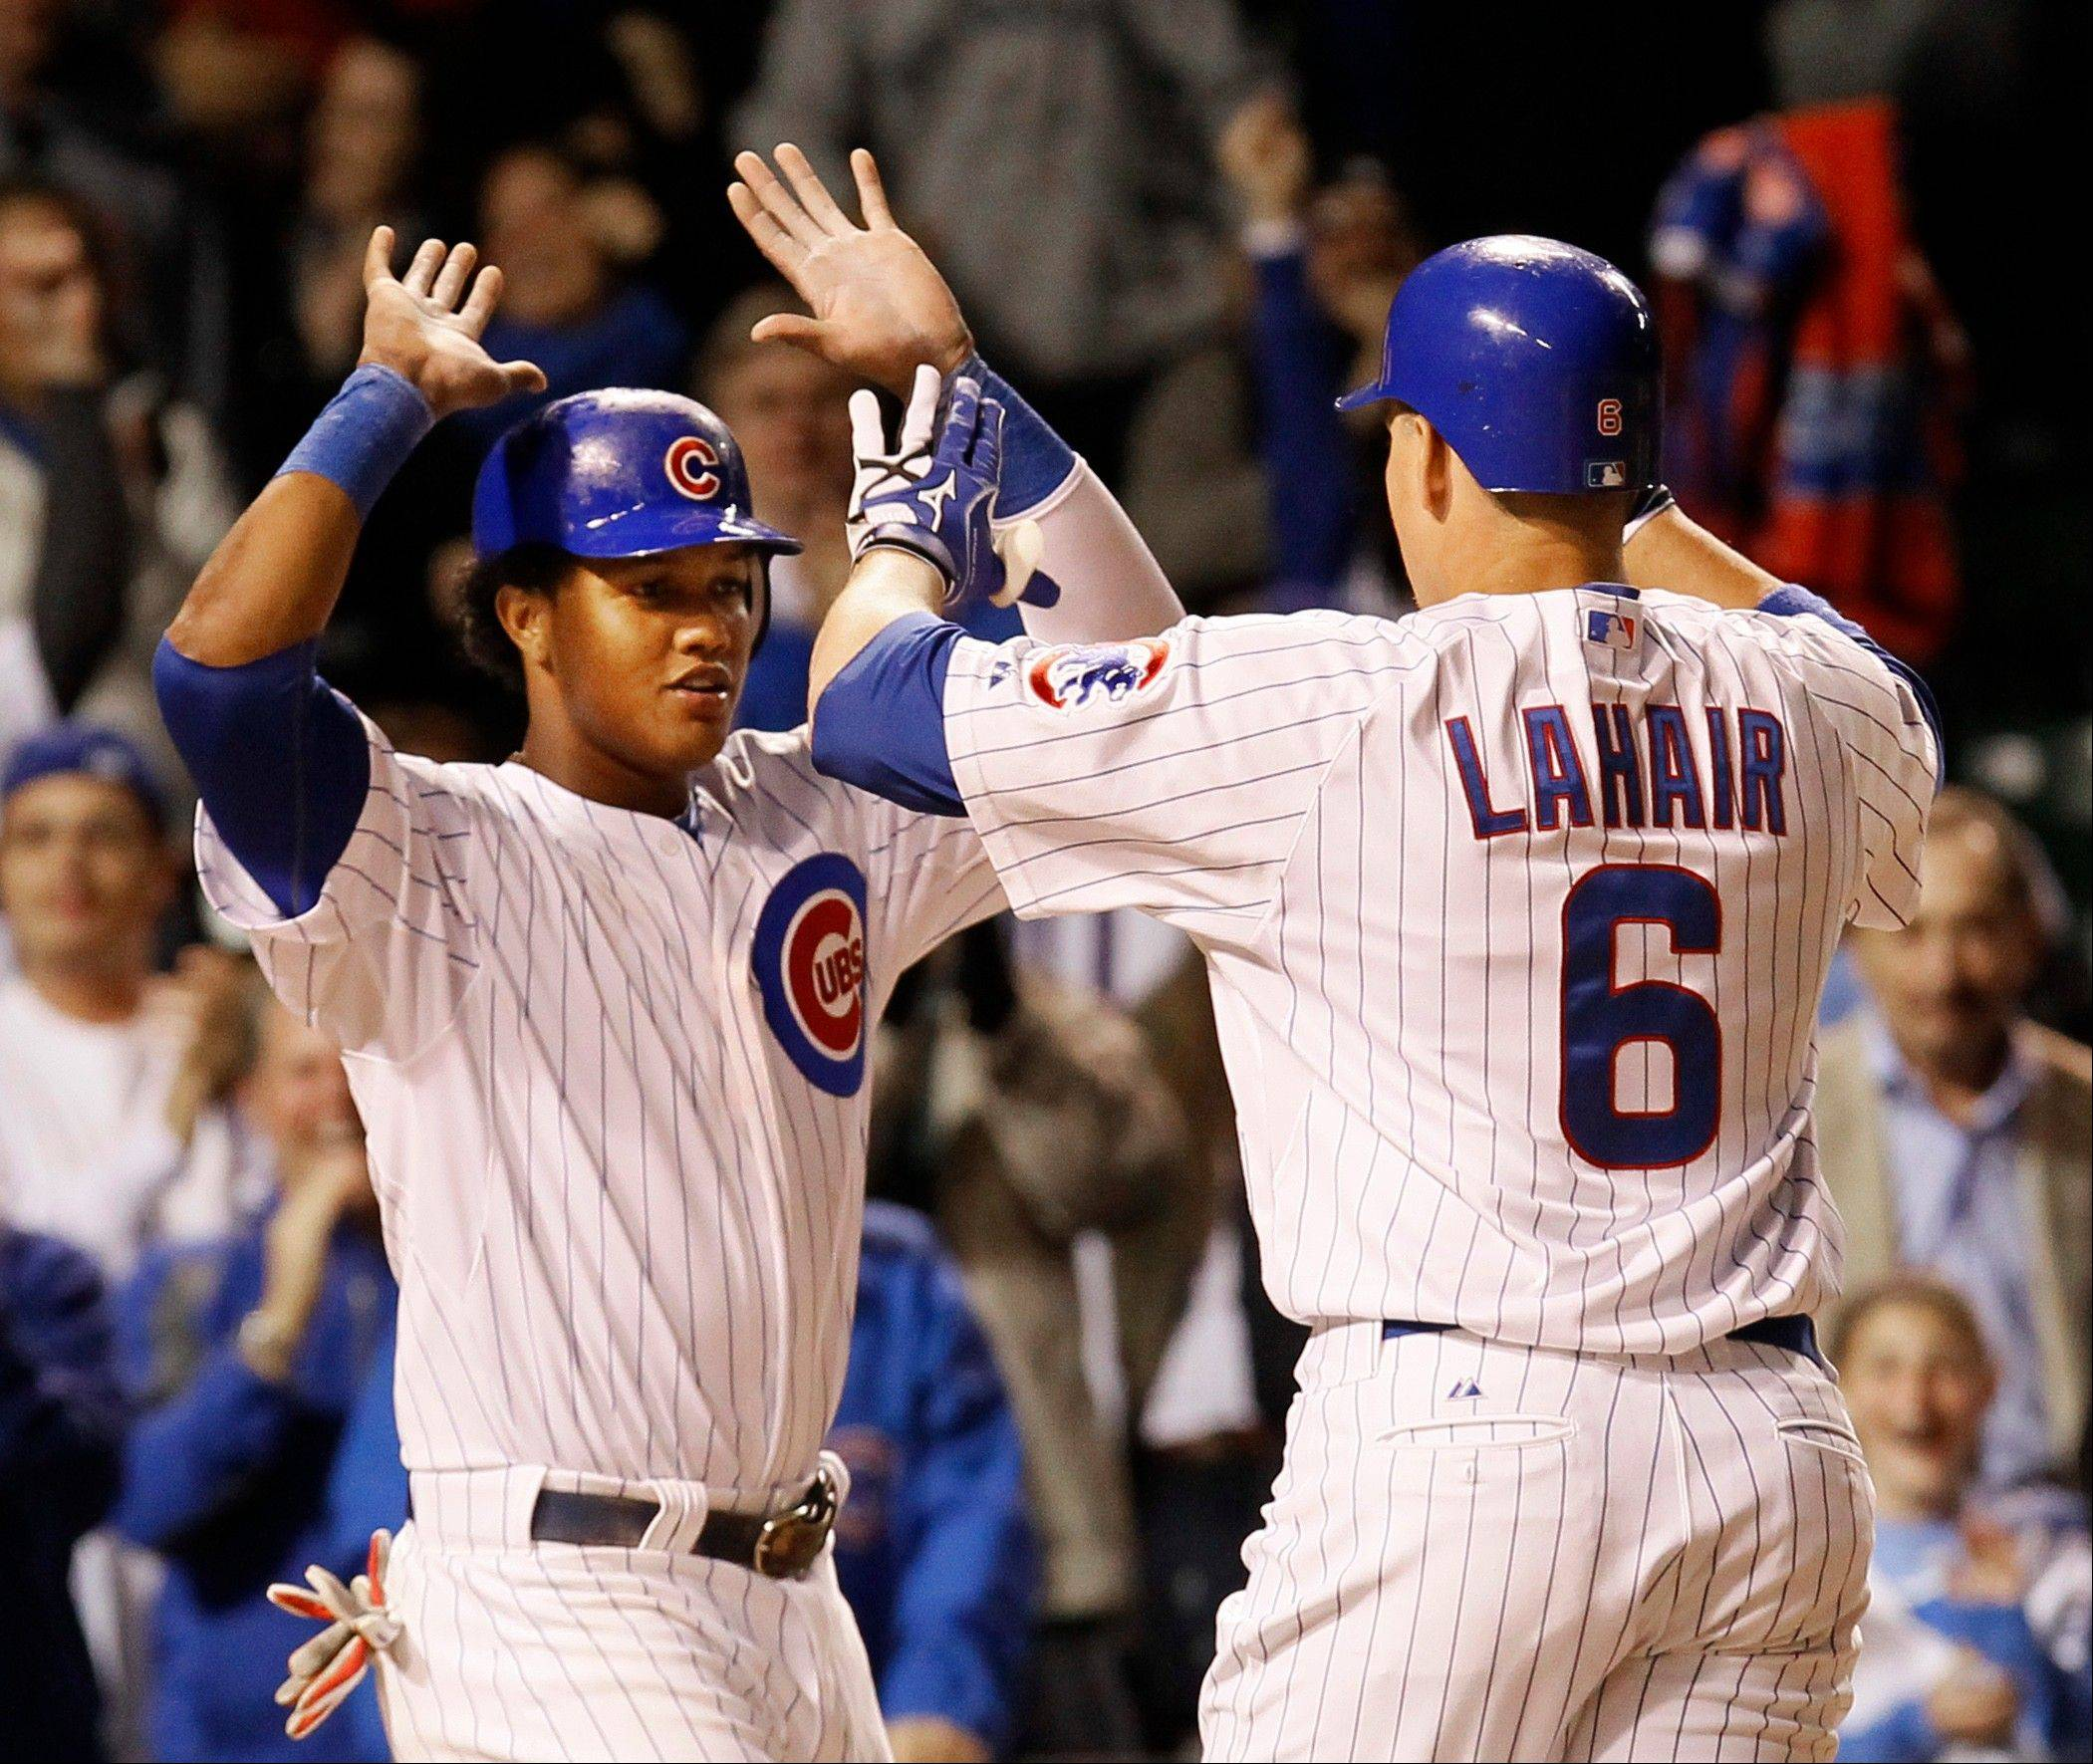 The Cubs will have two representatives at this year's MLB All-Star Game in Kansas City. Shortstop Starlin Castro was named to the NL team, and Bryan LaHair was selected as a reserve.